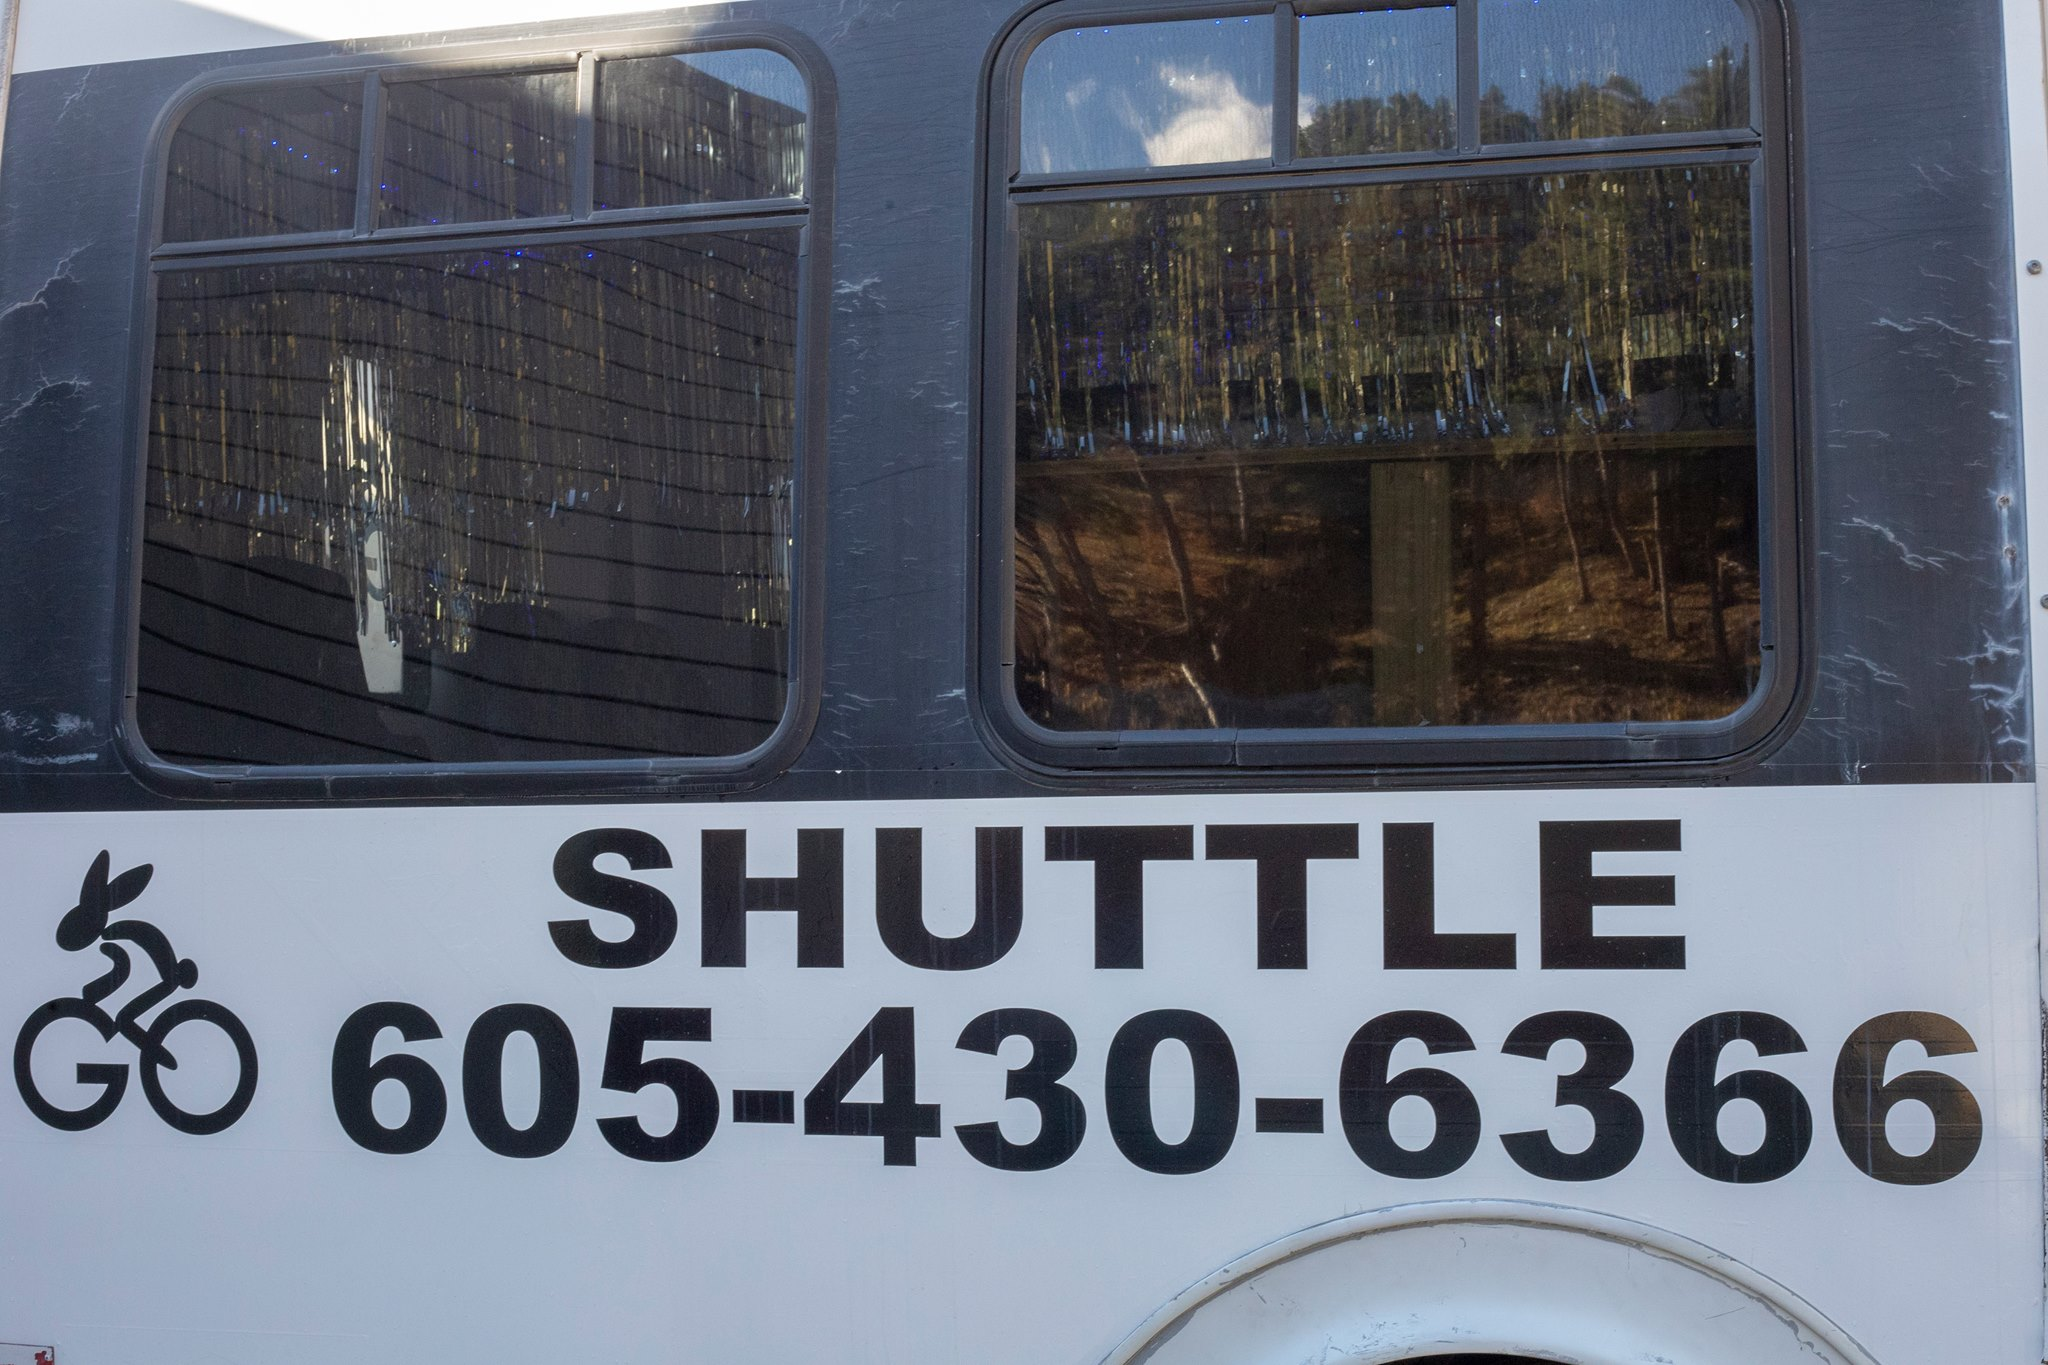 "One of the shuttles seen from the side. It has the Rabbit Bicycles logo on the far right, the word ""Shuttle"" written under the windows, and the phone number below that."